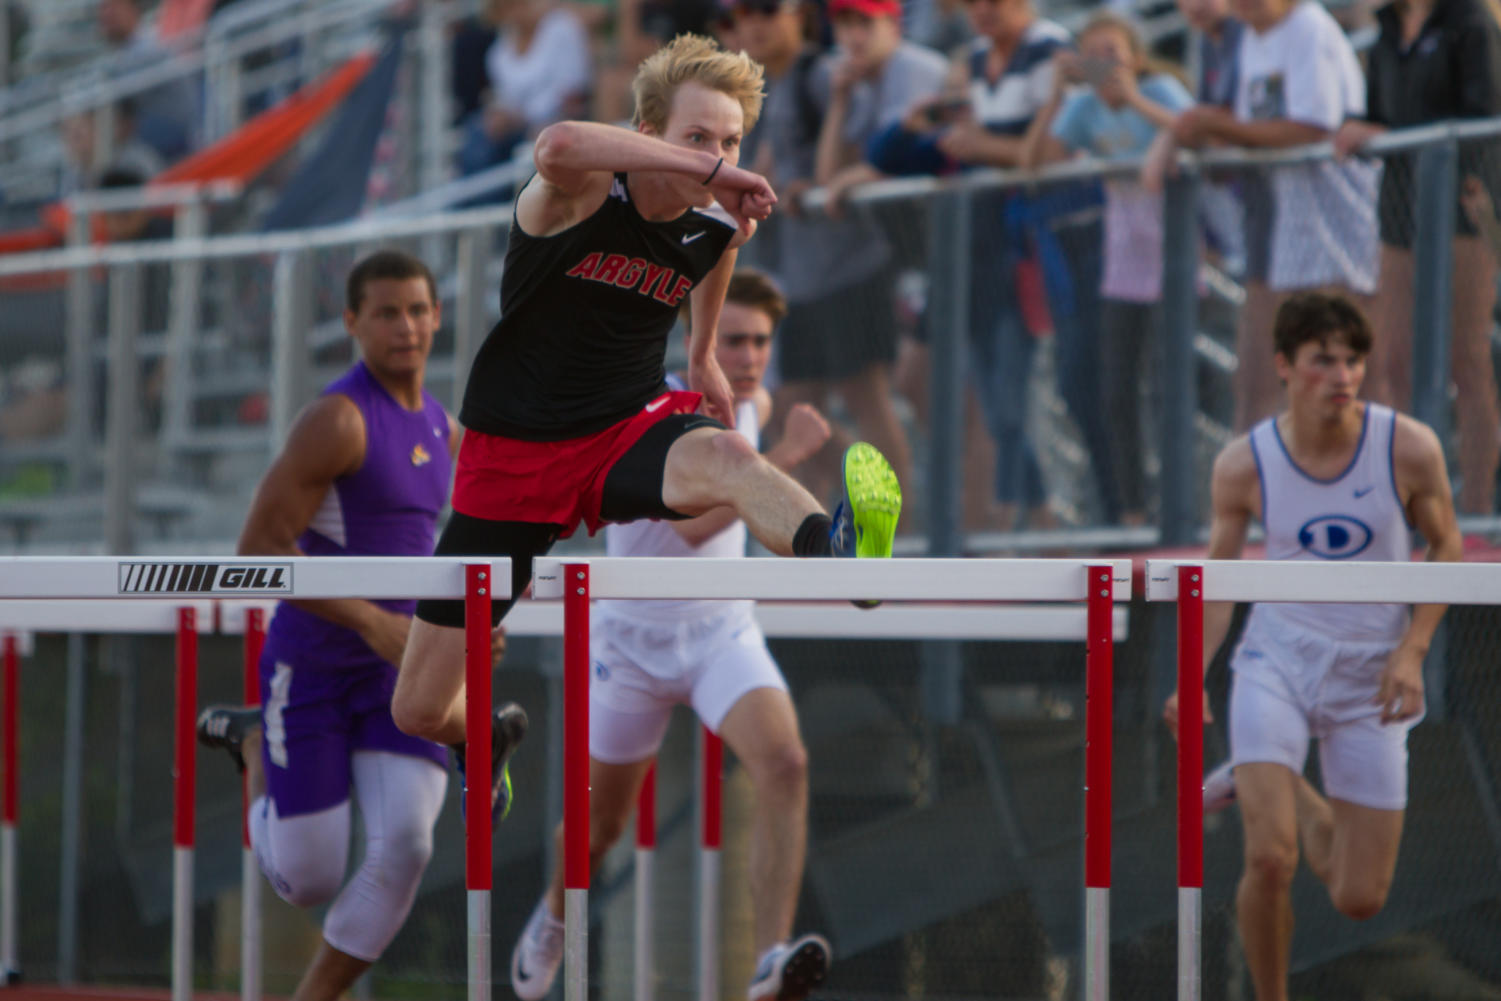 Senior Trent McCloud competes in the District Track Meet on April 12, 2018 at Argyle High School in Argyle, Texas. (Lauren Landrum / The Talon News)